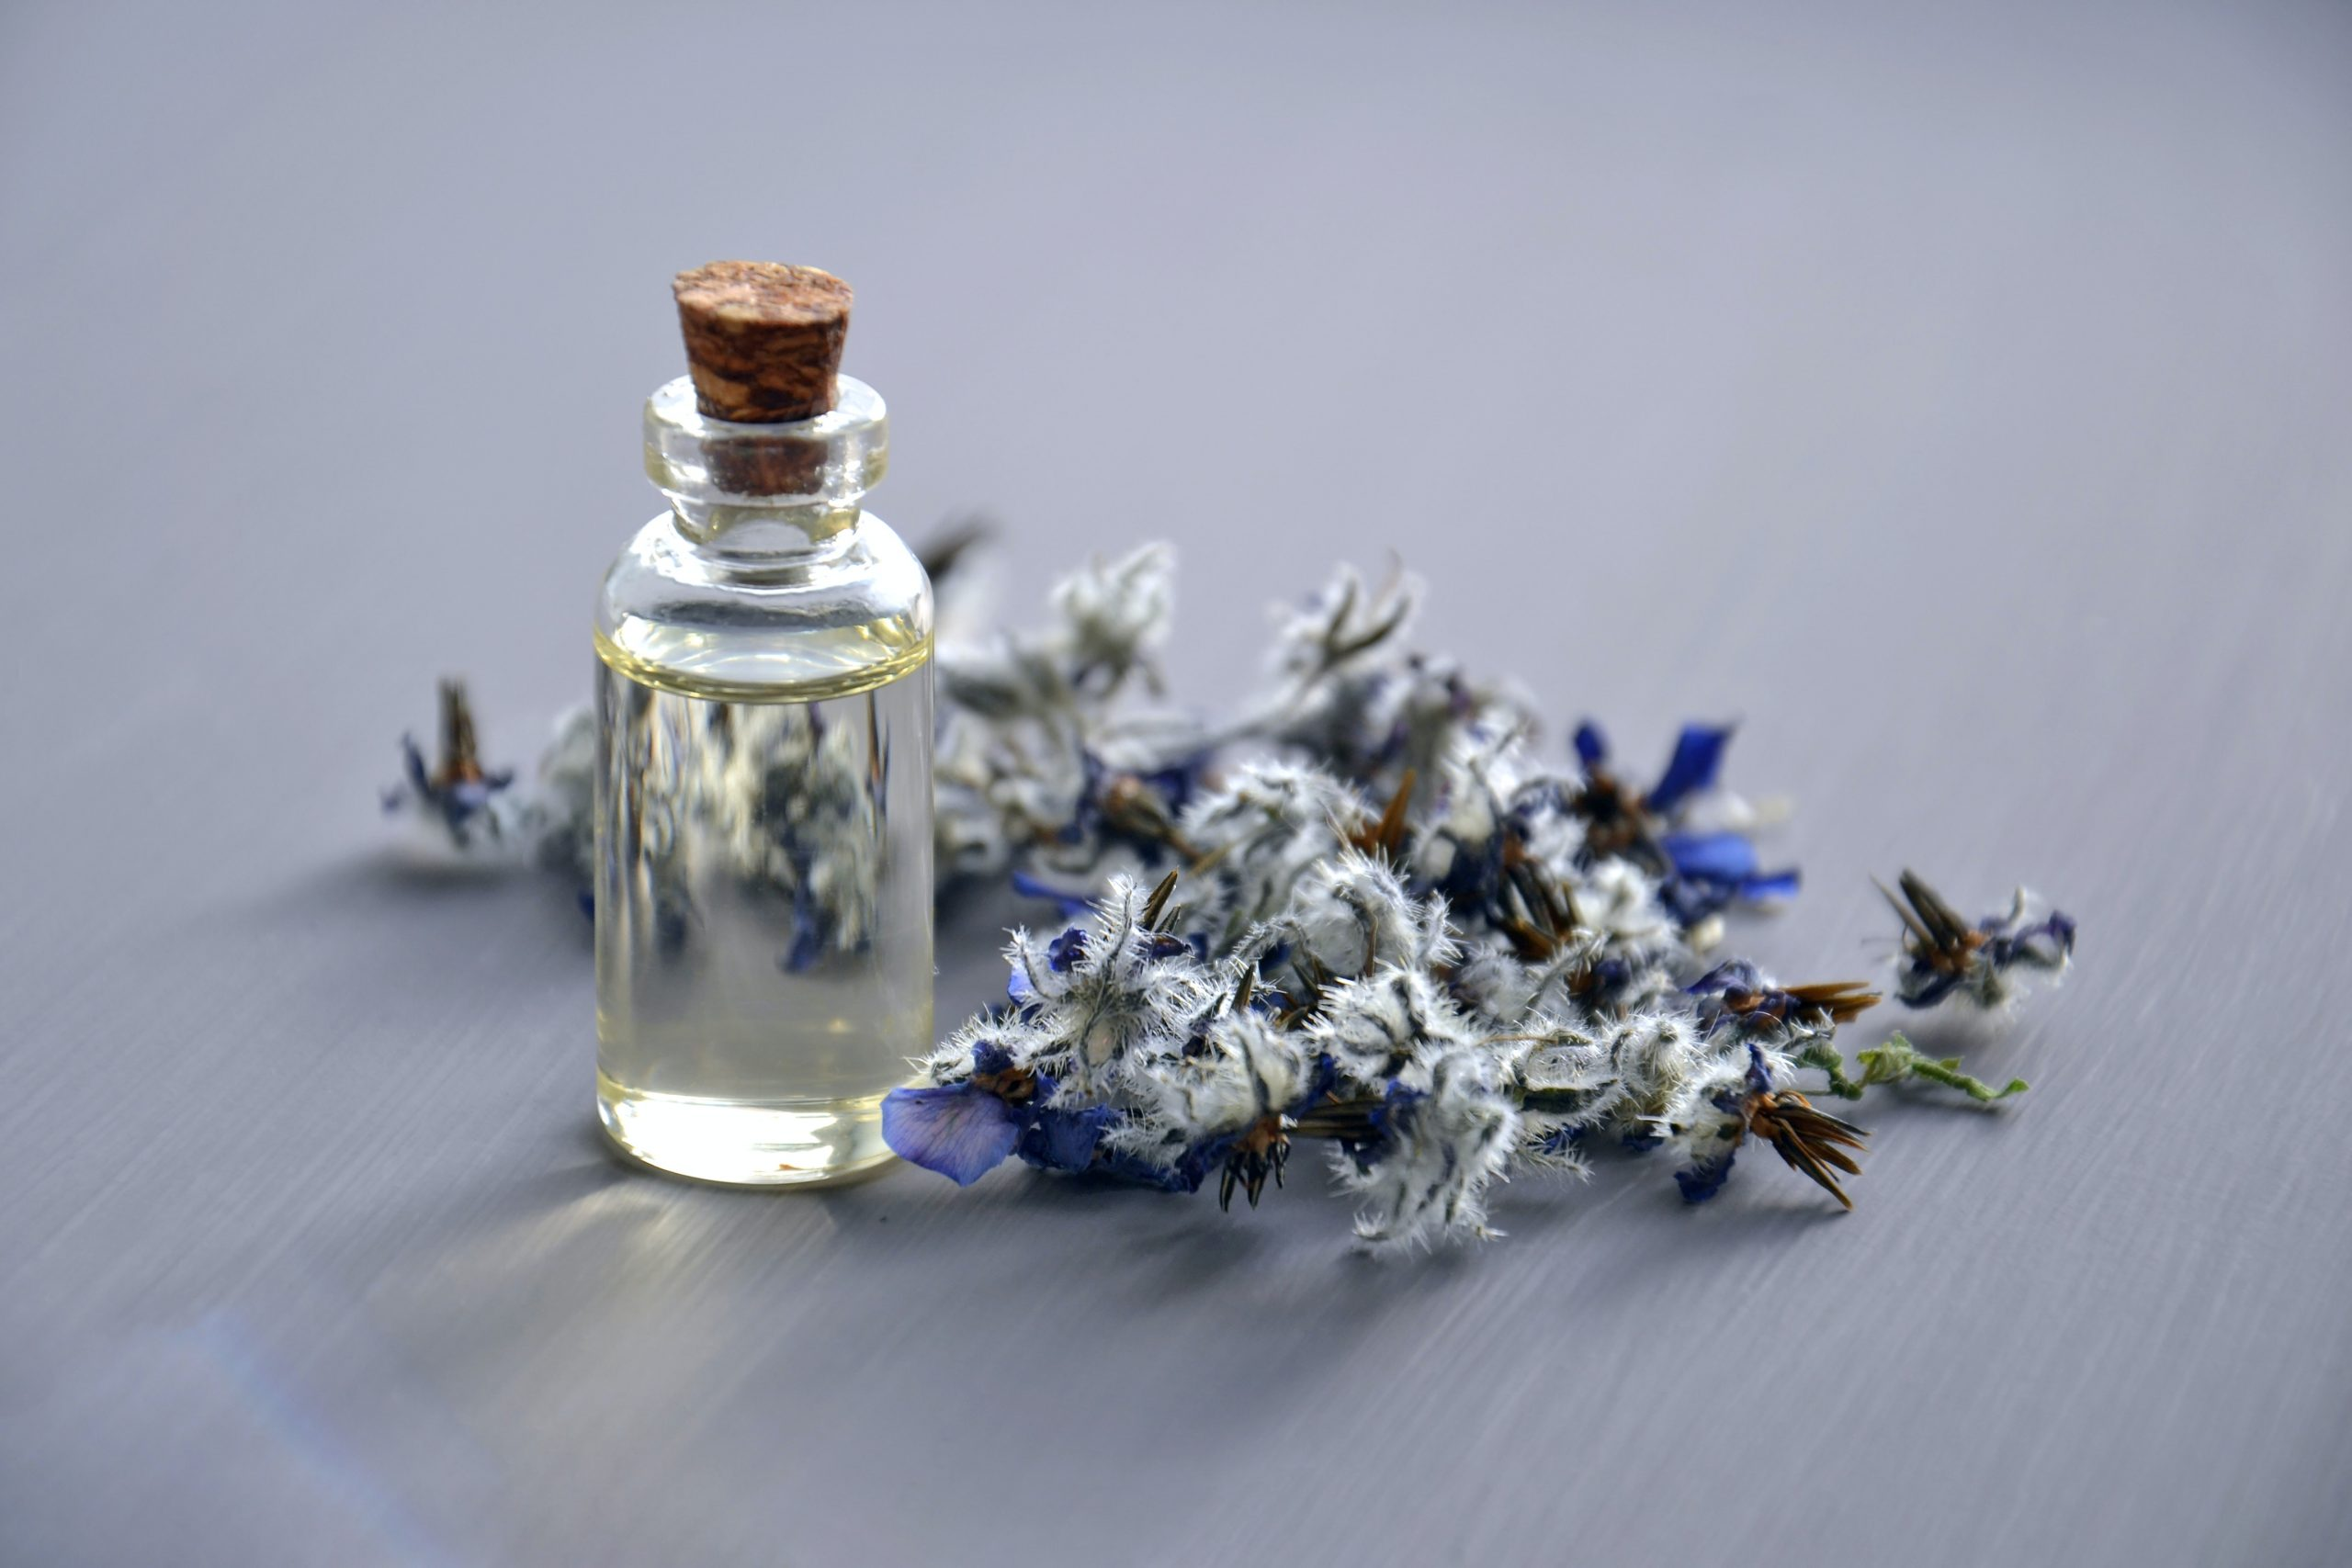 How Essential Oils Can Help with Pulmonary Fibrosis